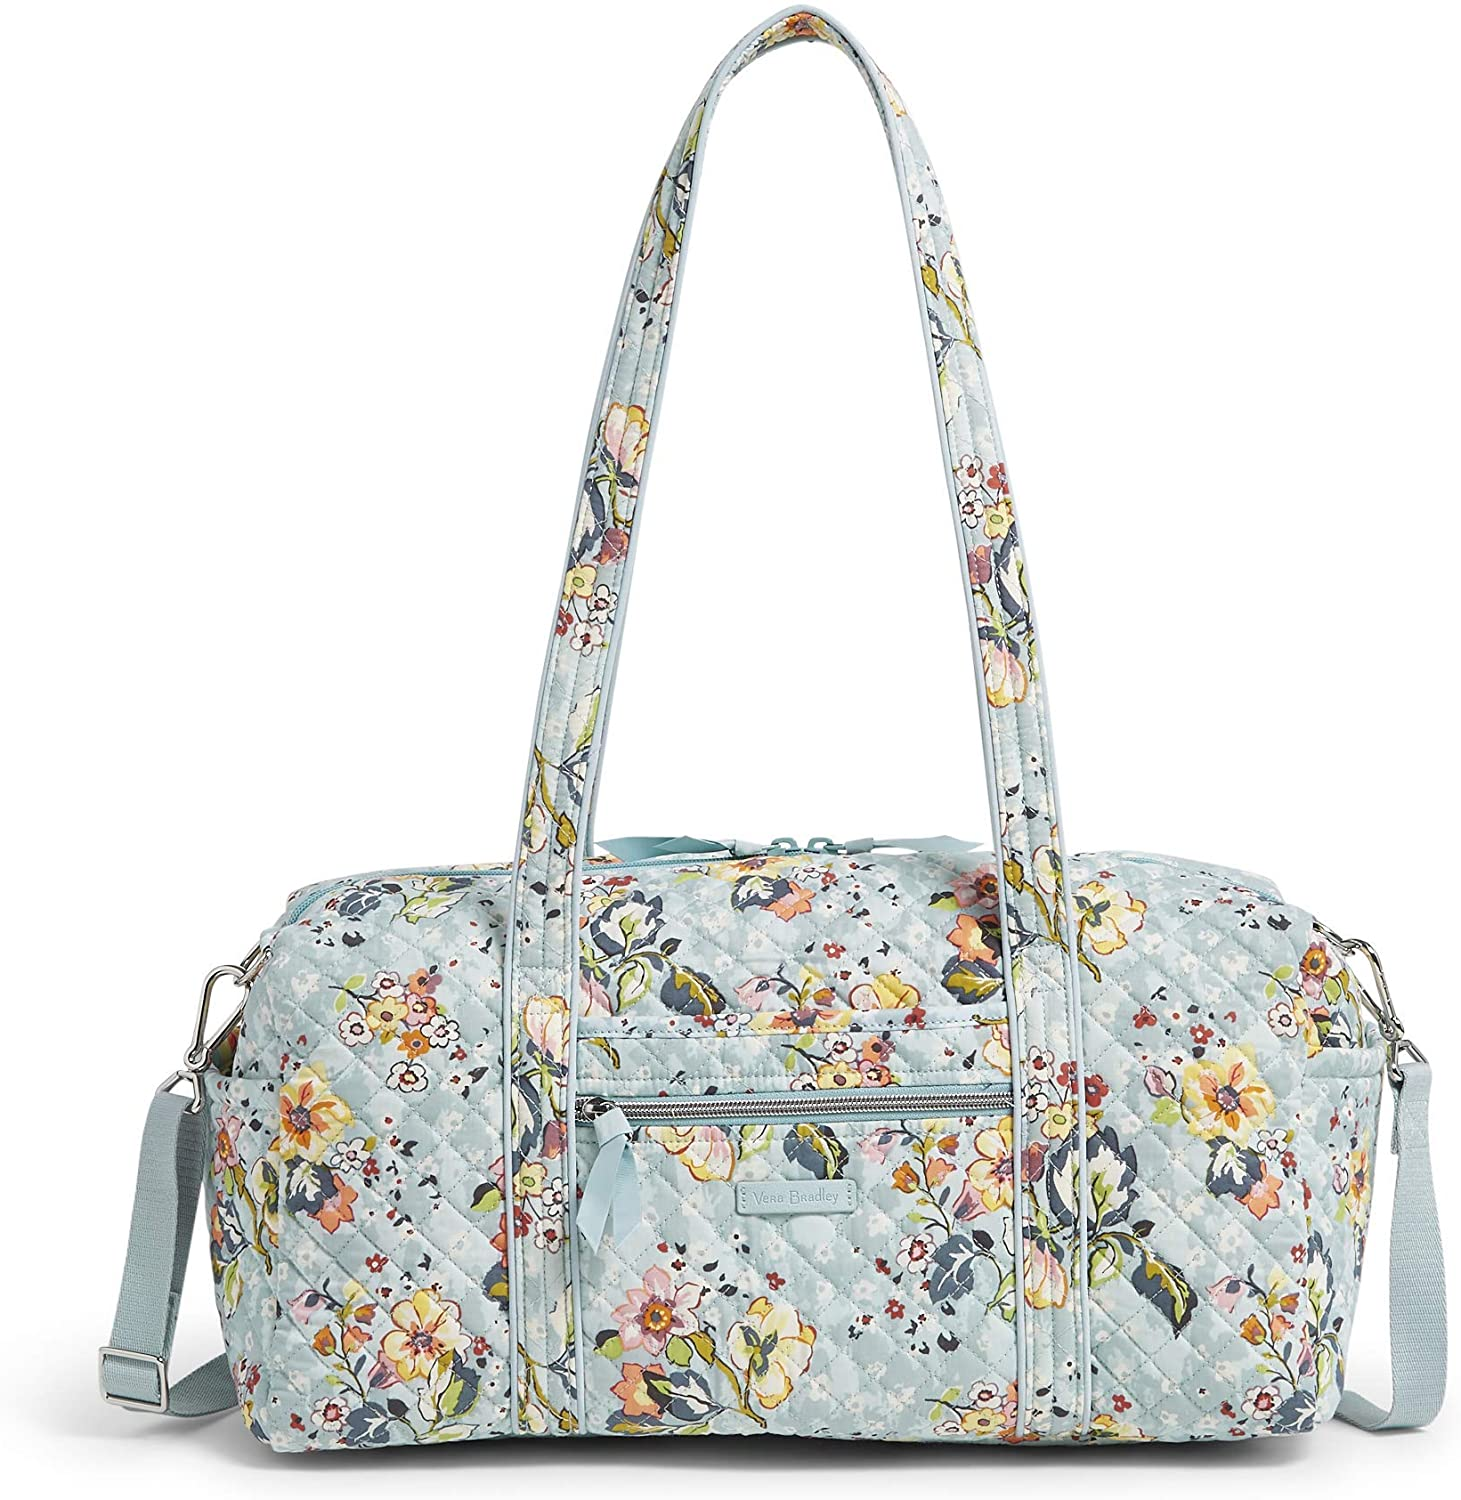 Vera Bradley Women's Signature Cotton Travel Duffel Bag, Floating Garden, Small 18